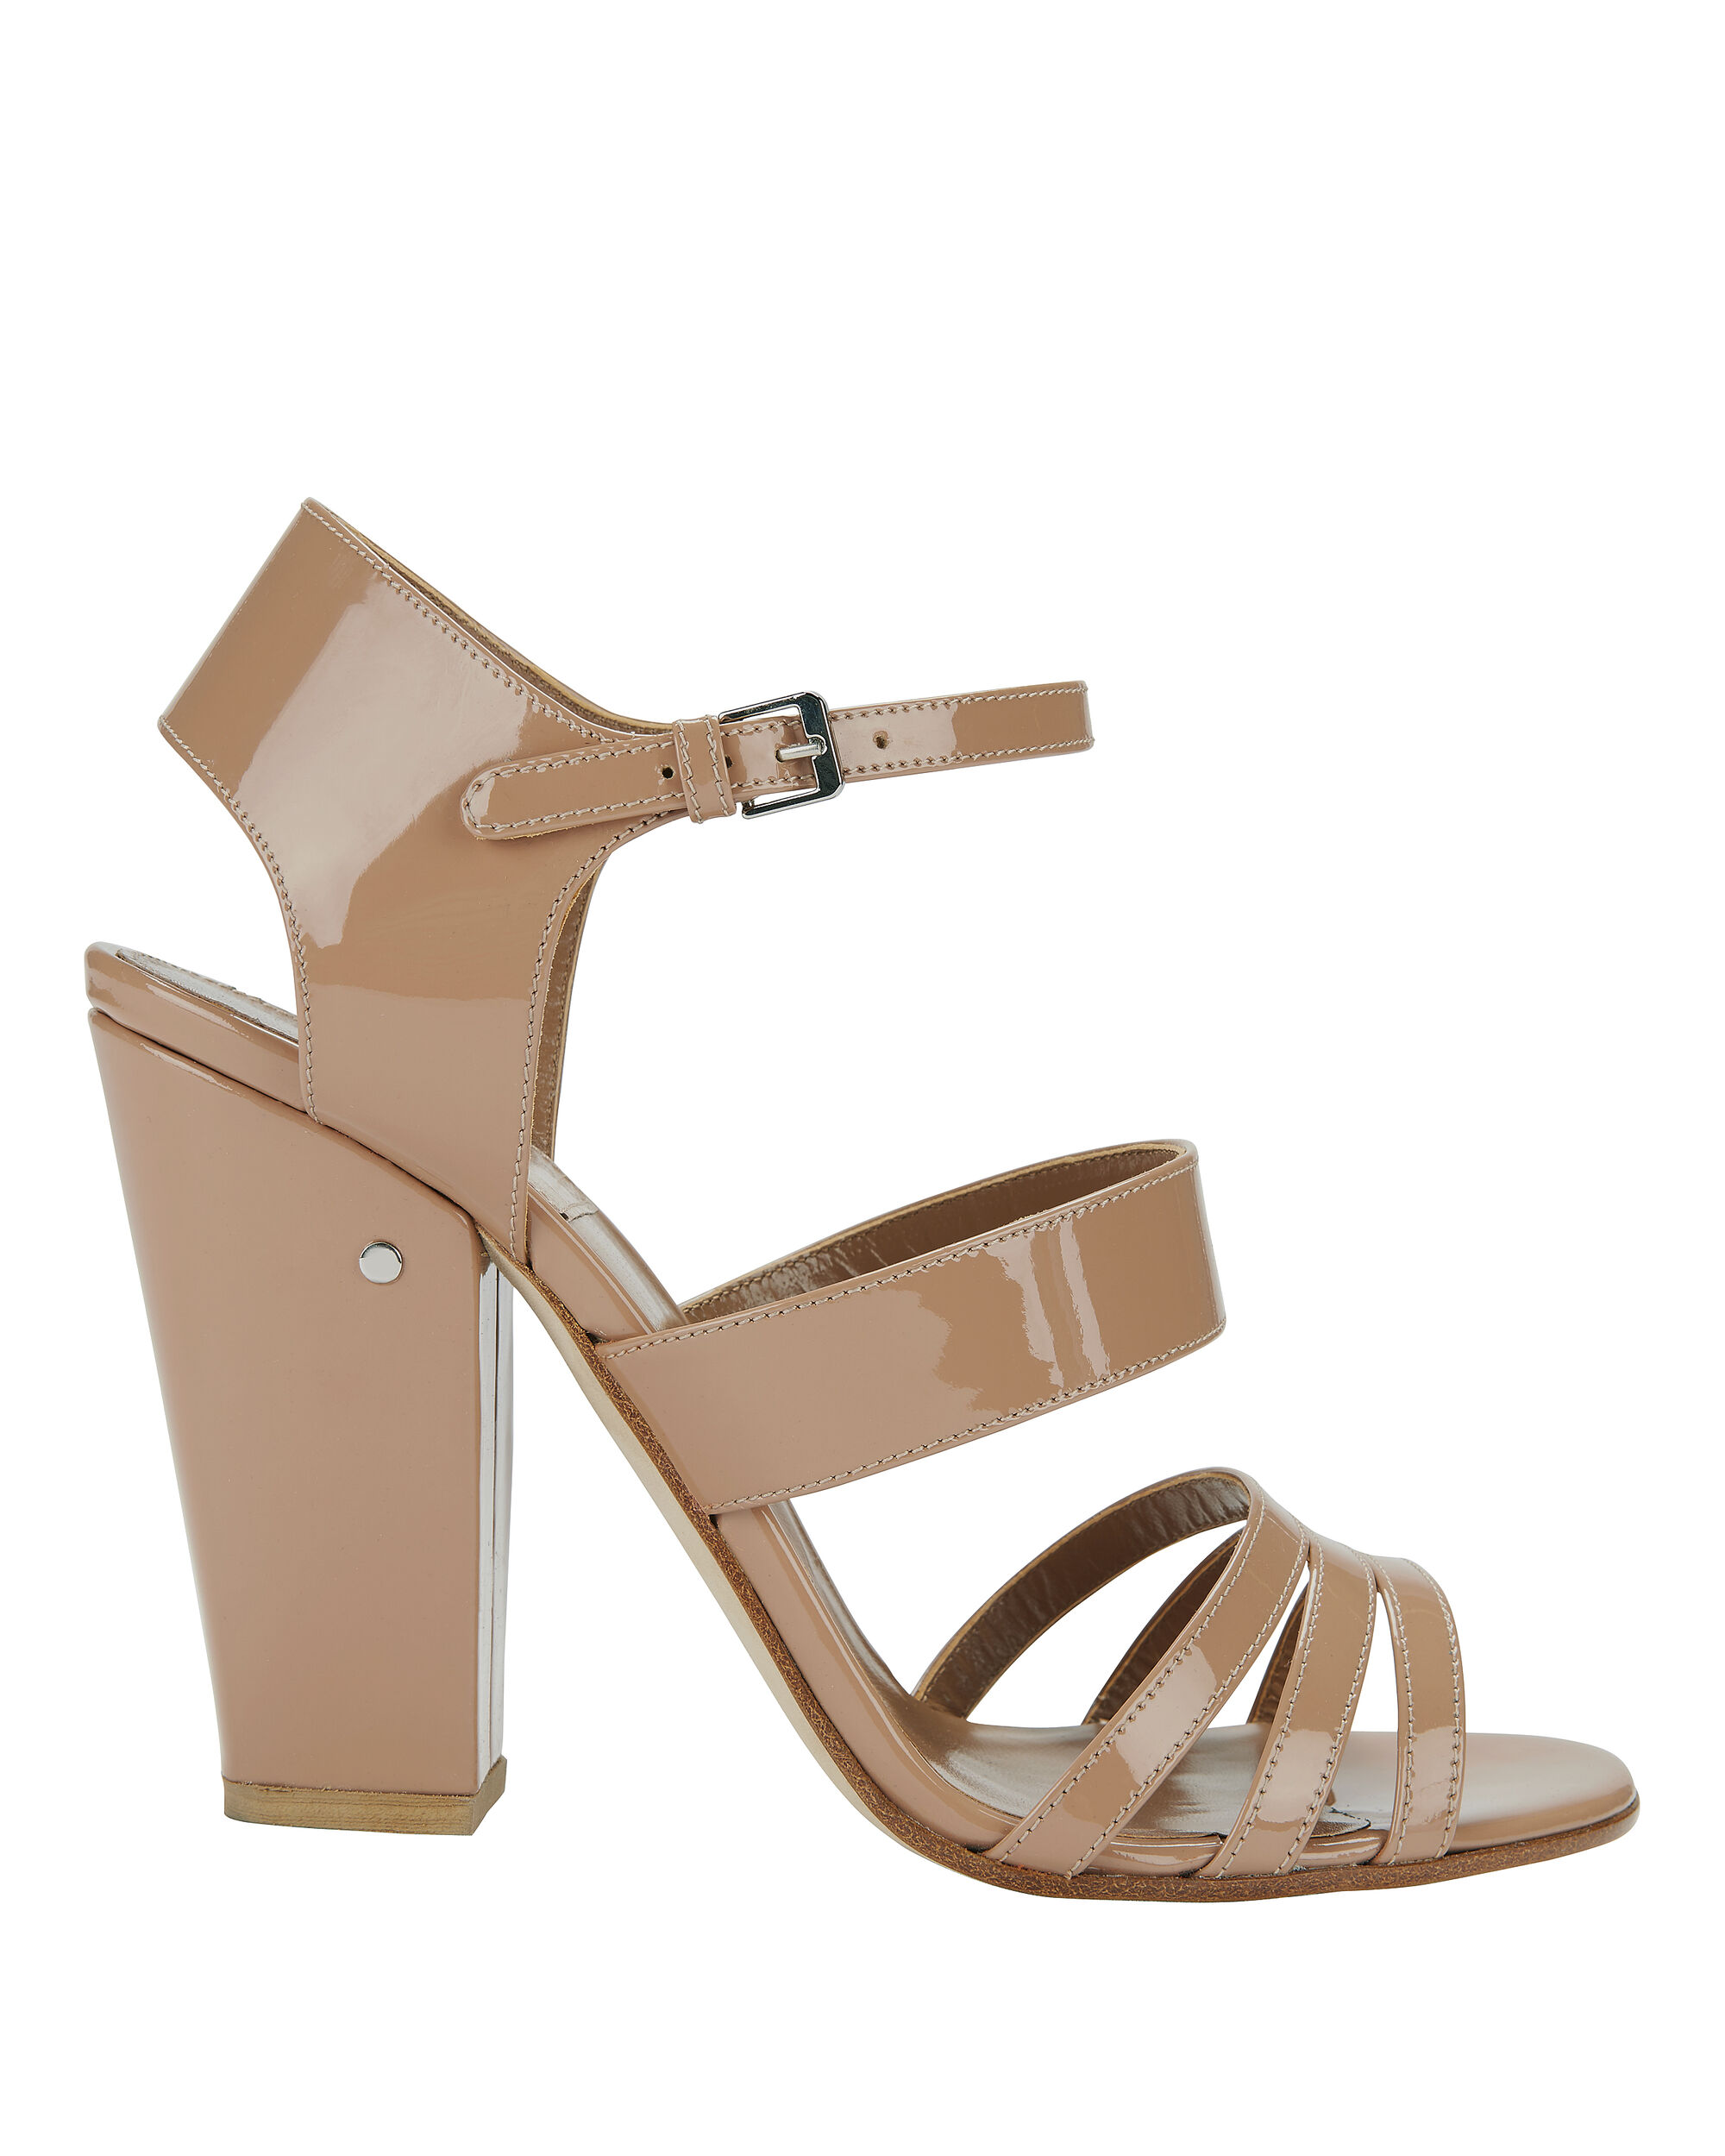 Ninon Nude Patent Leather High Heel Sandals, NUDE, hi-res